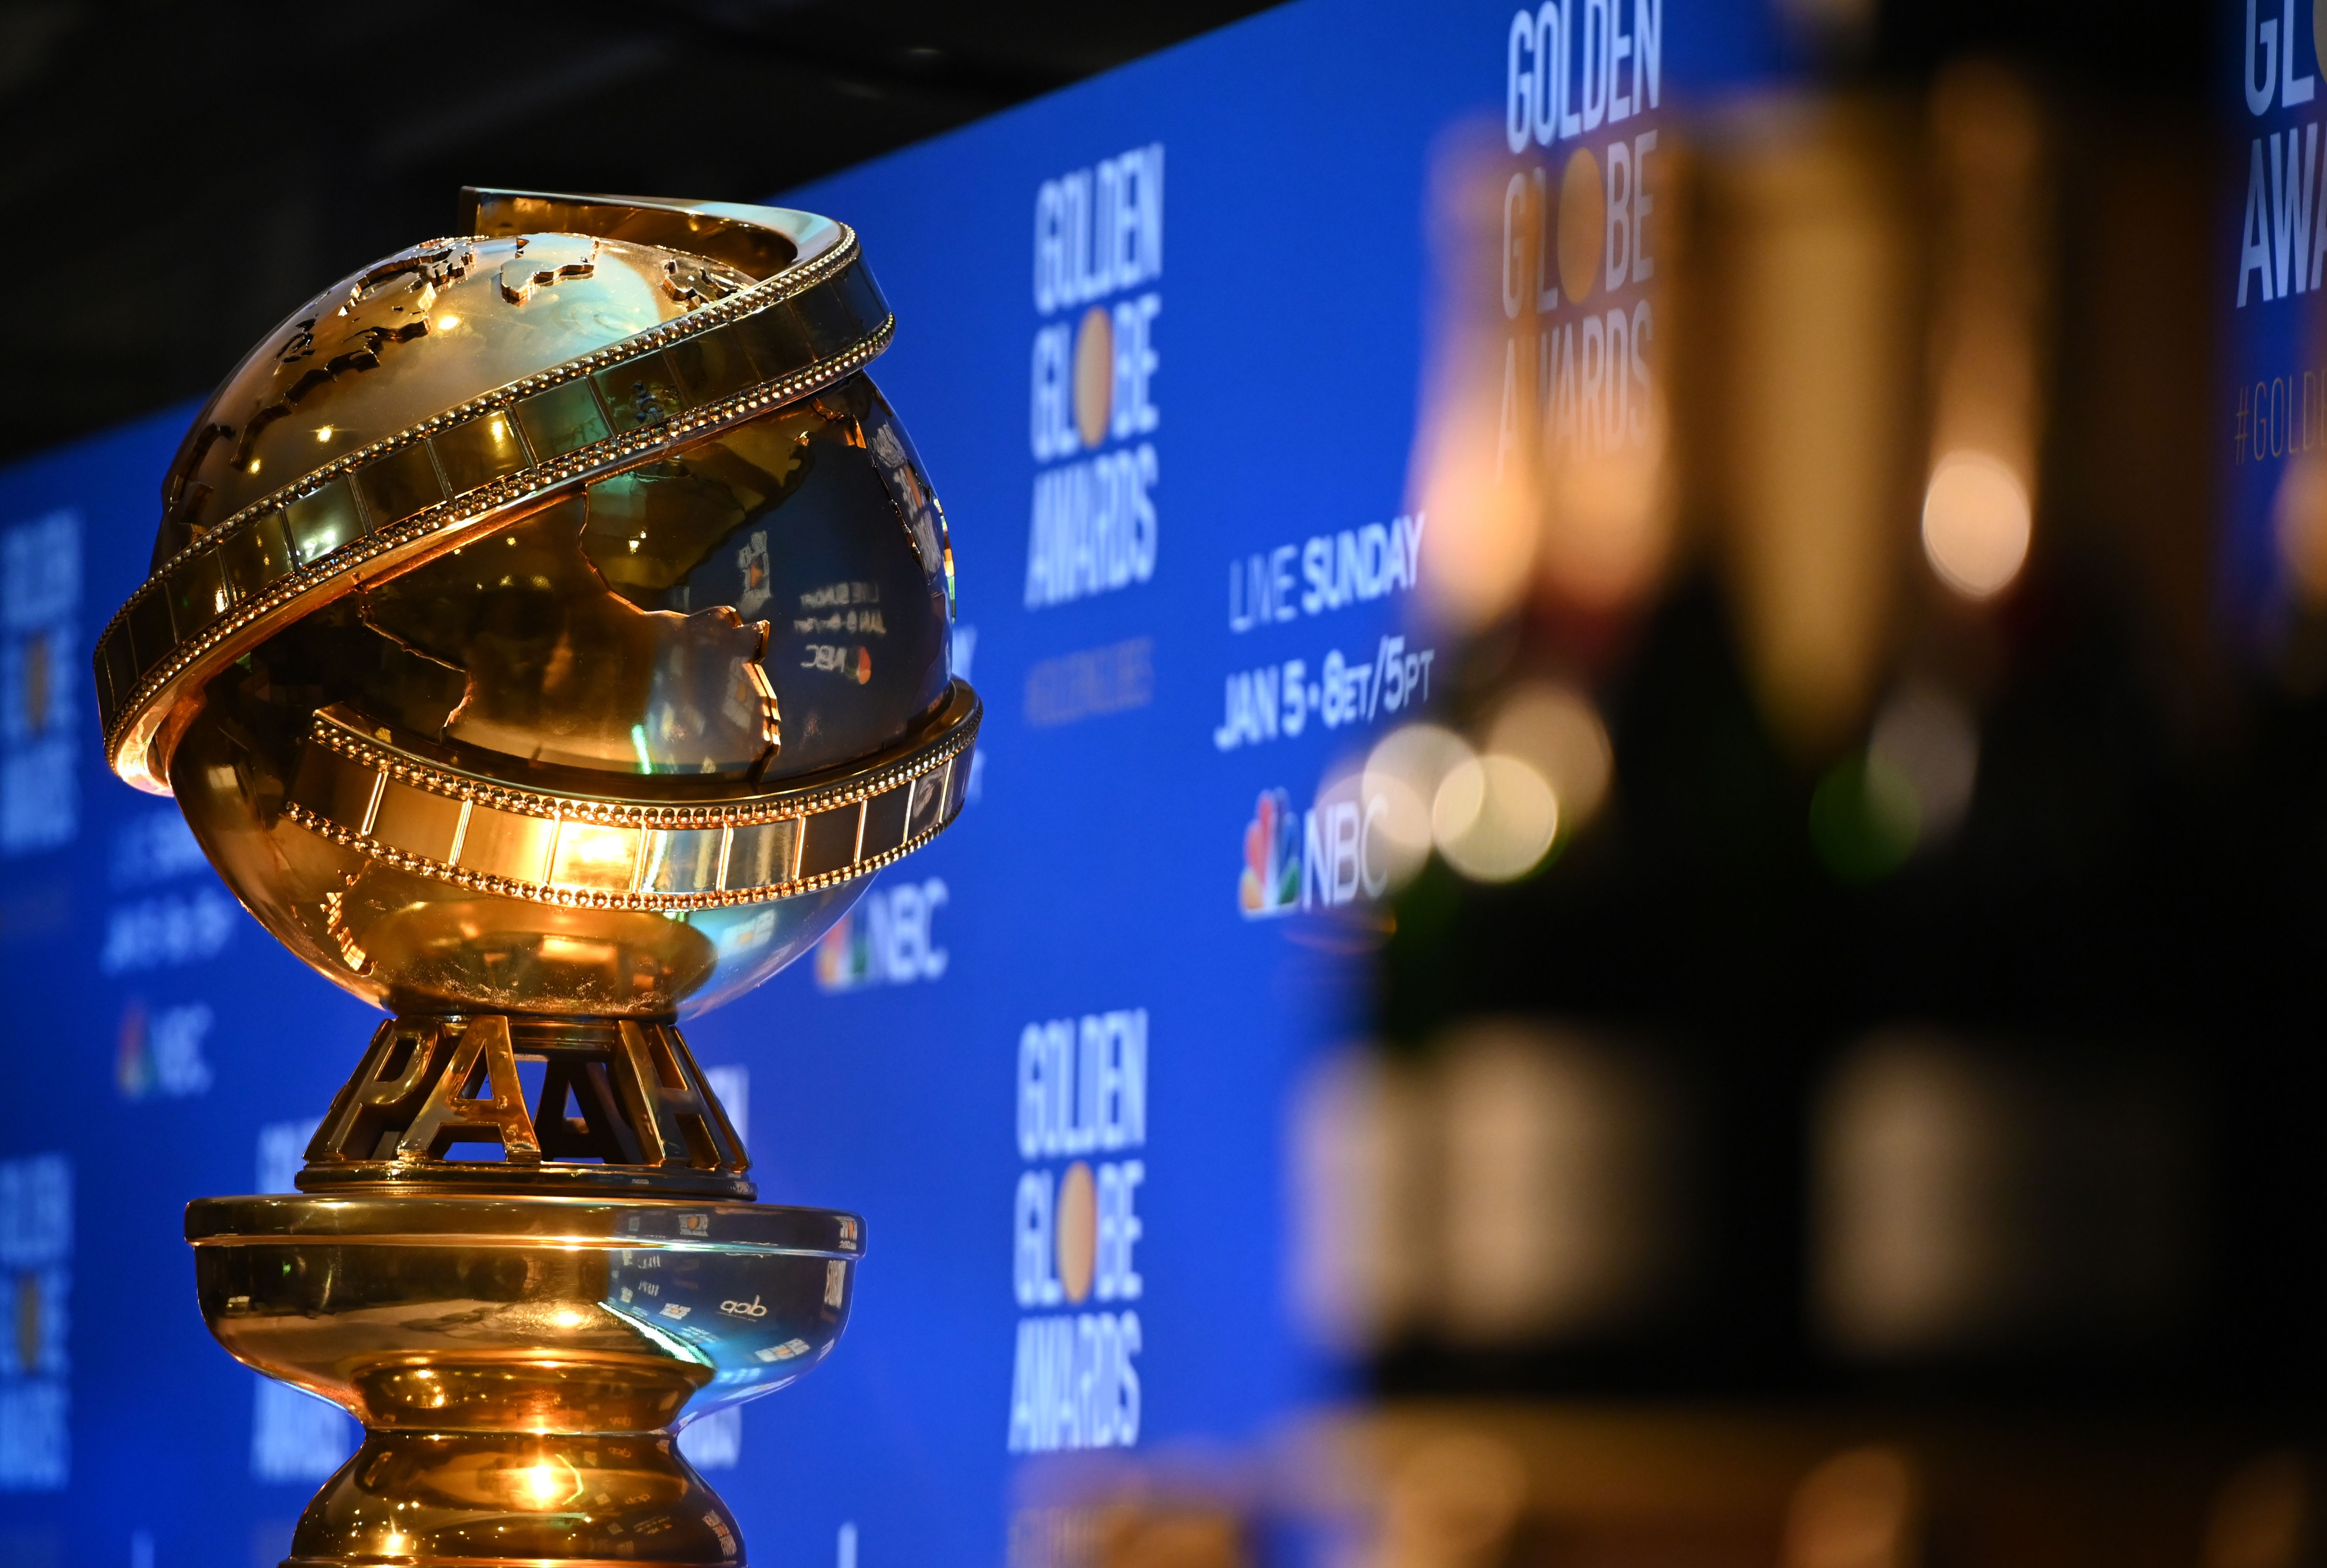 A Golden Globe trophy is set by the stage ahead of the 77th Annual Golden Globe Awards nominations announcement in Beverly Hills on Dec. 9, 2019.